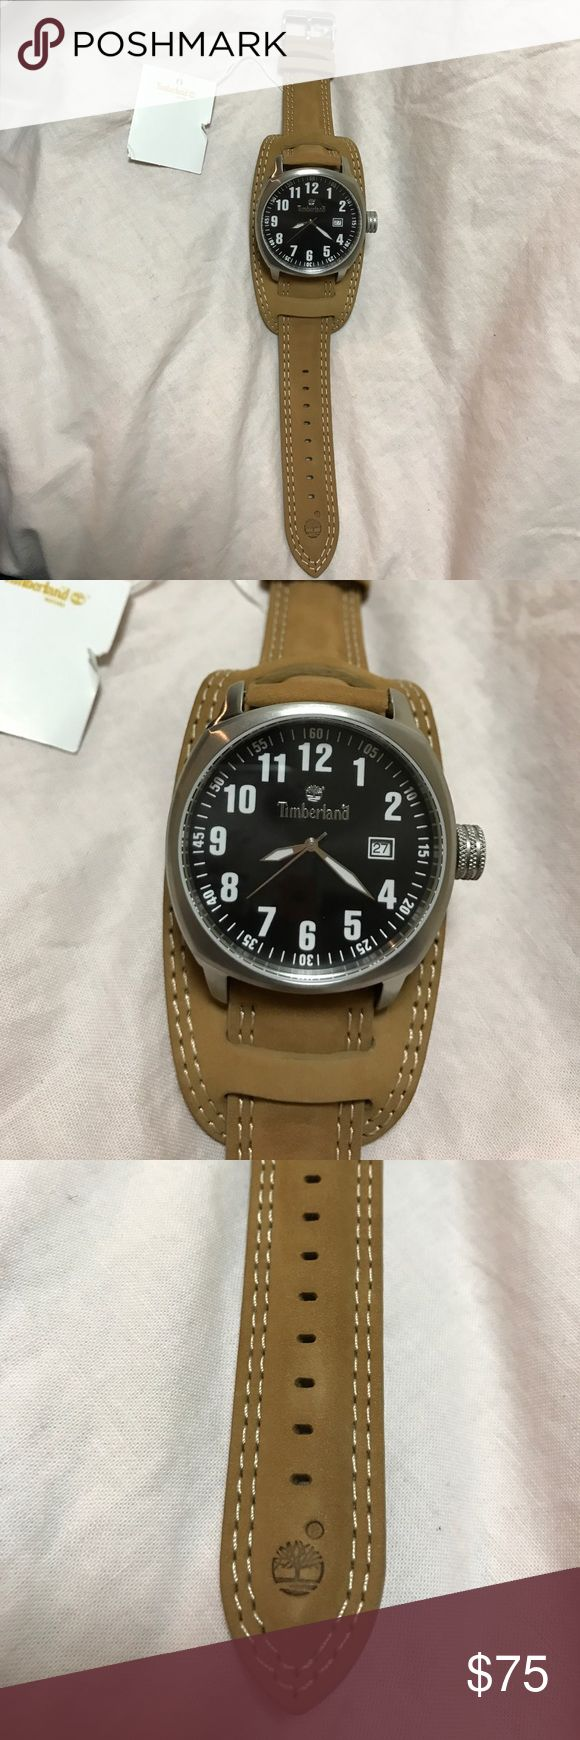 1HR SALE Men's Timberland Watch Brown Timberland Watch, never worn! Comes with box, battery needs to be changed. Timberland Accessories Watches